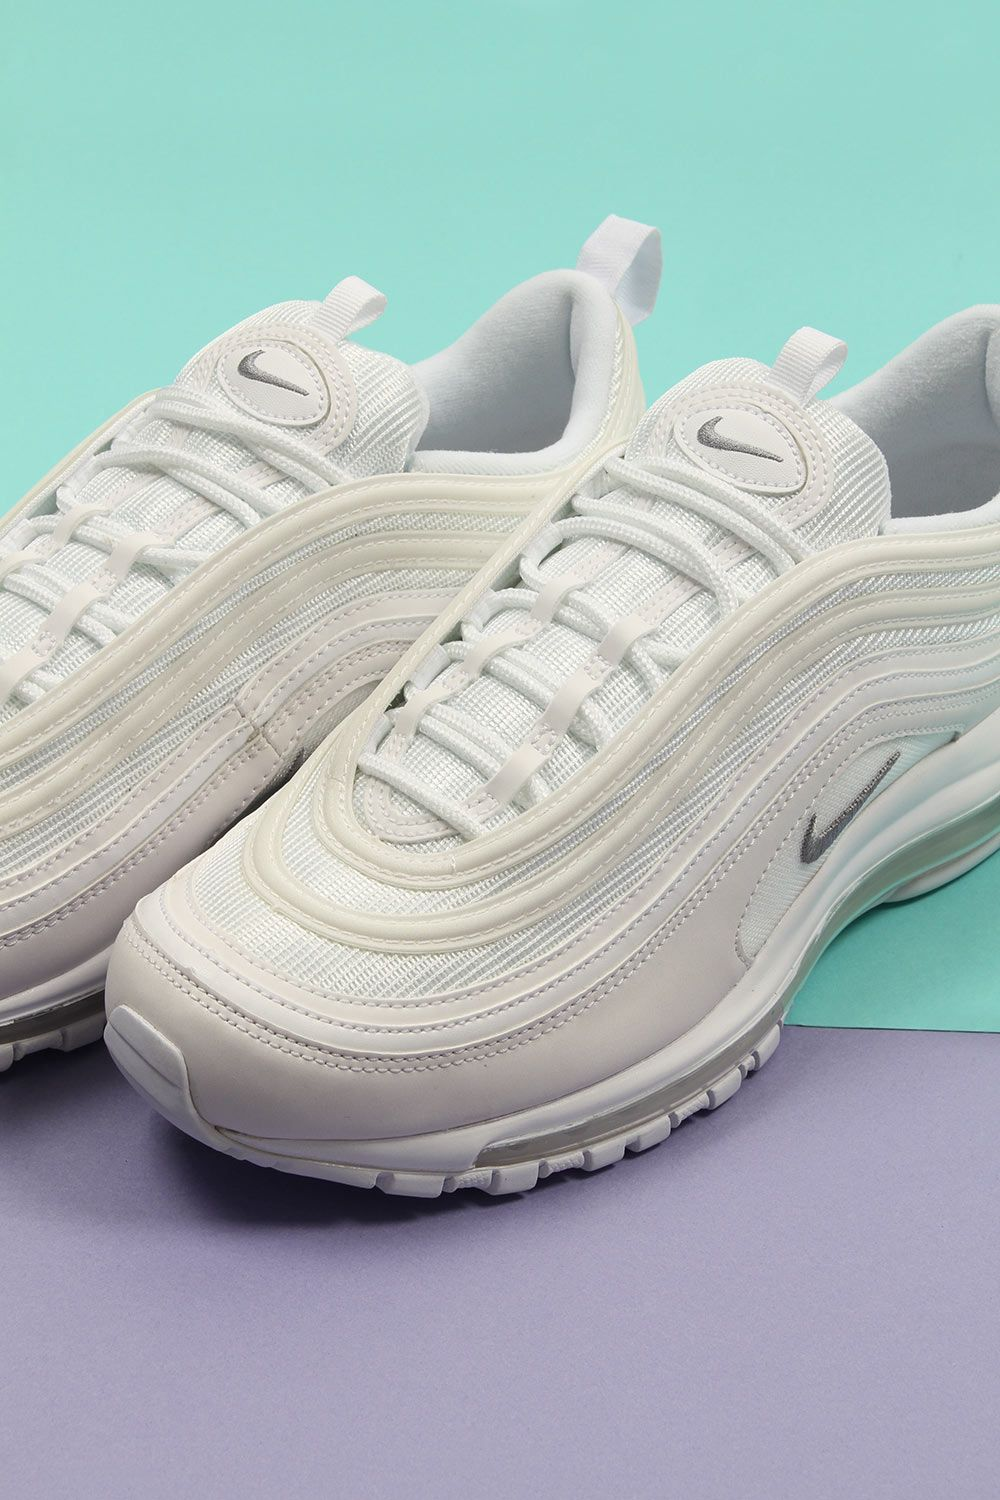 New #Nike #97s Launching 060418 #sneakers #womens #lilac